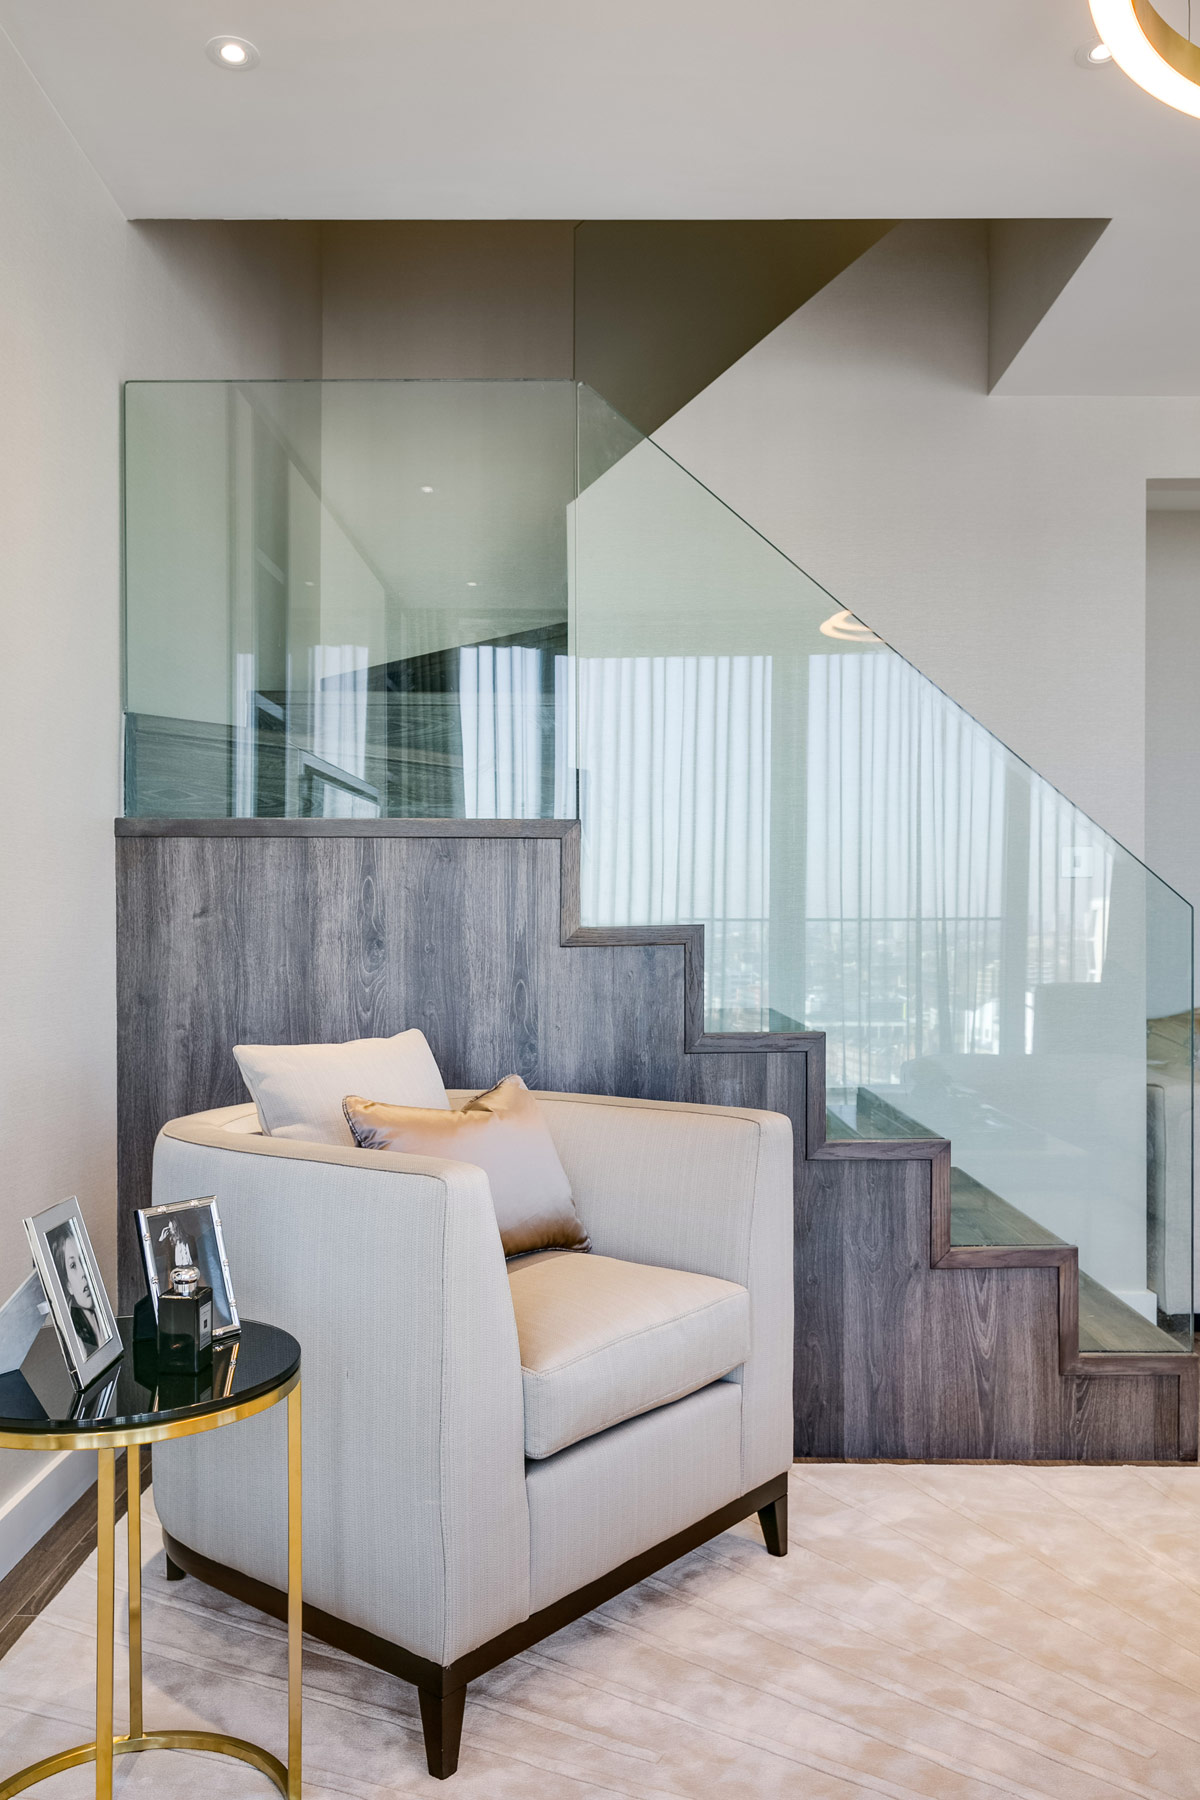 Onyx London, Duplex Apartment residential design project images for SBID interior design blog, Project of the Week